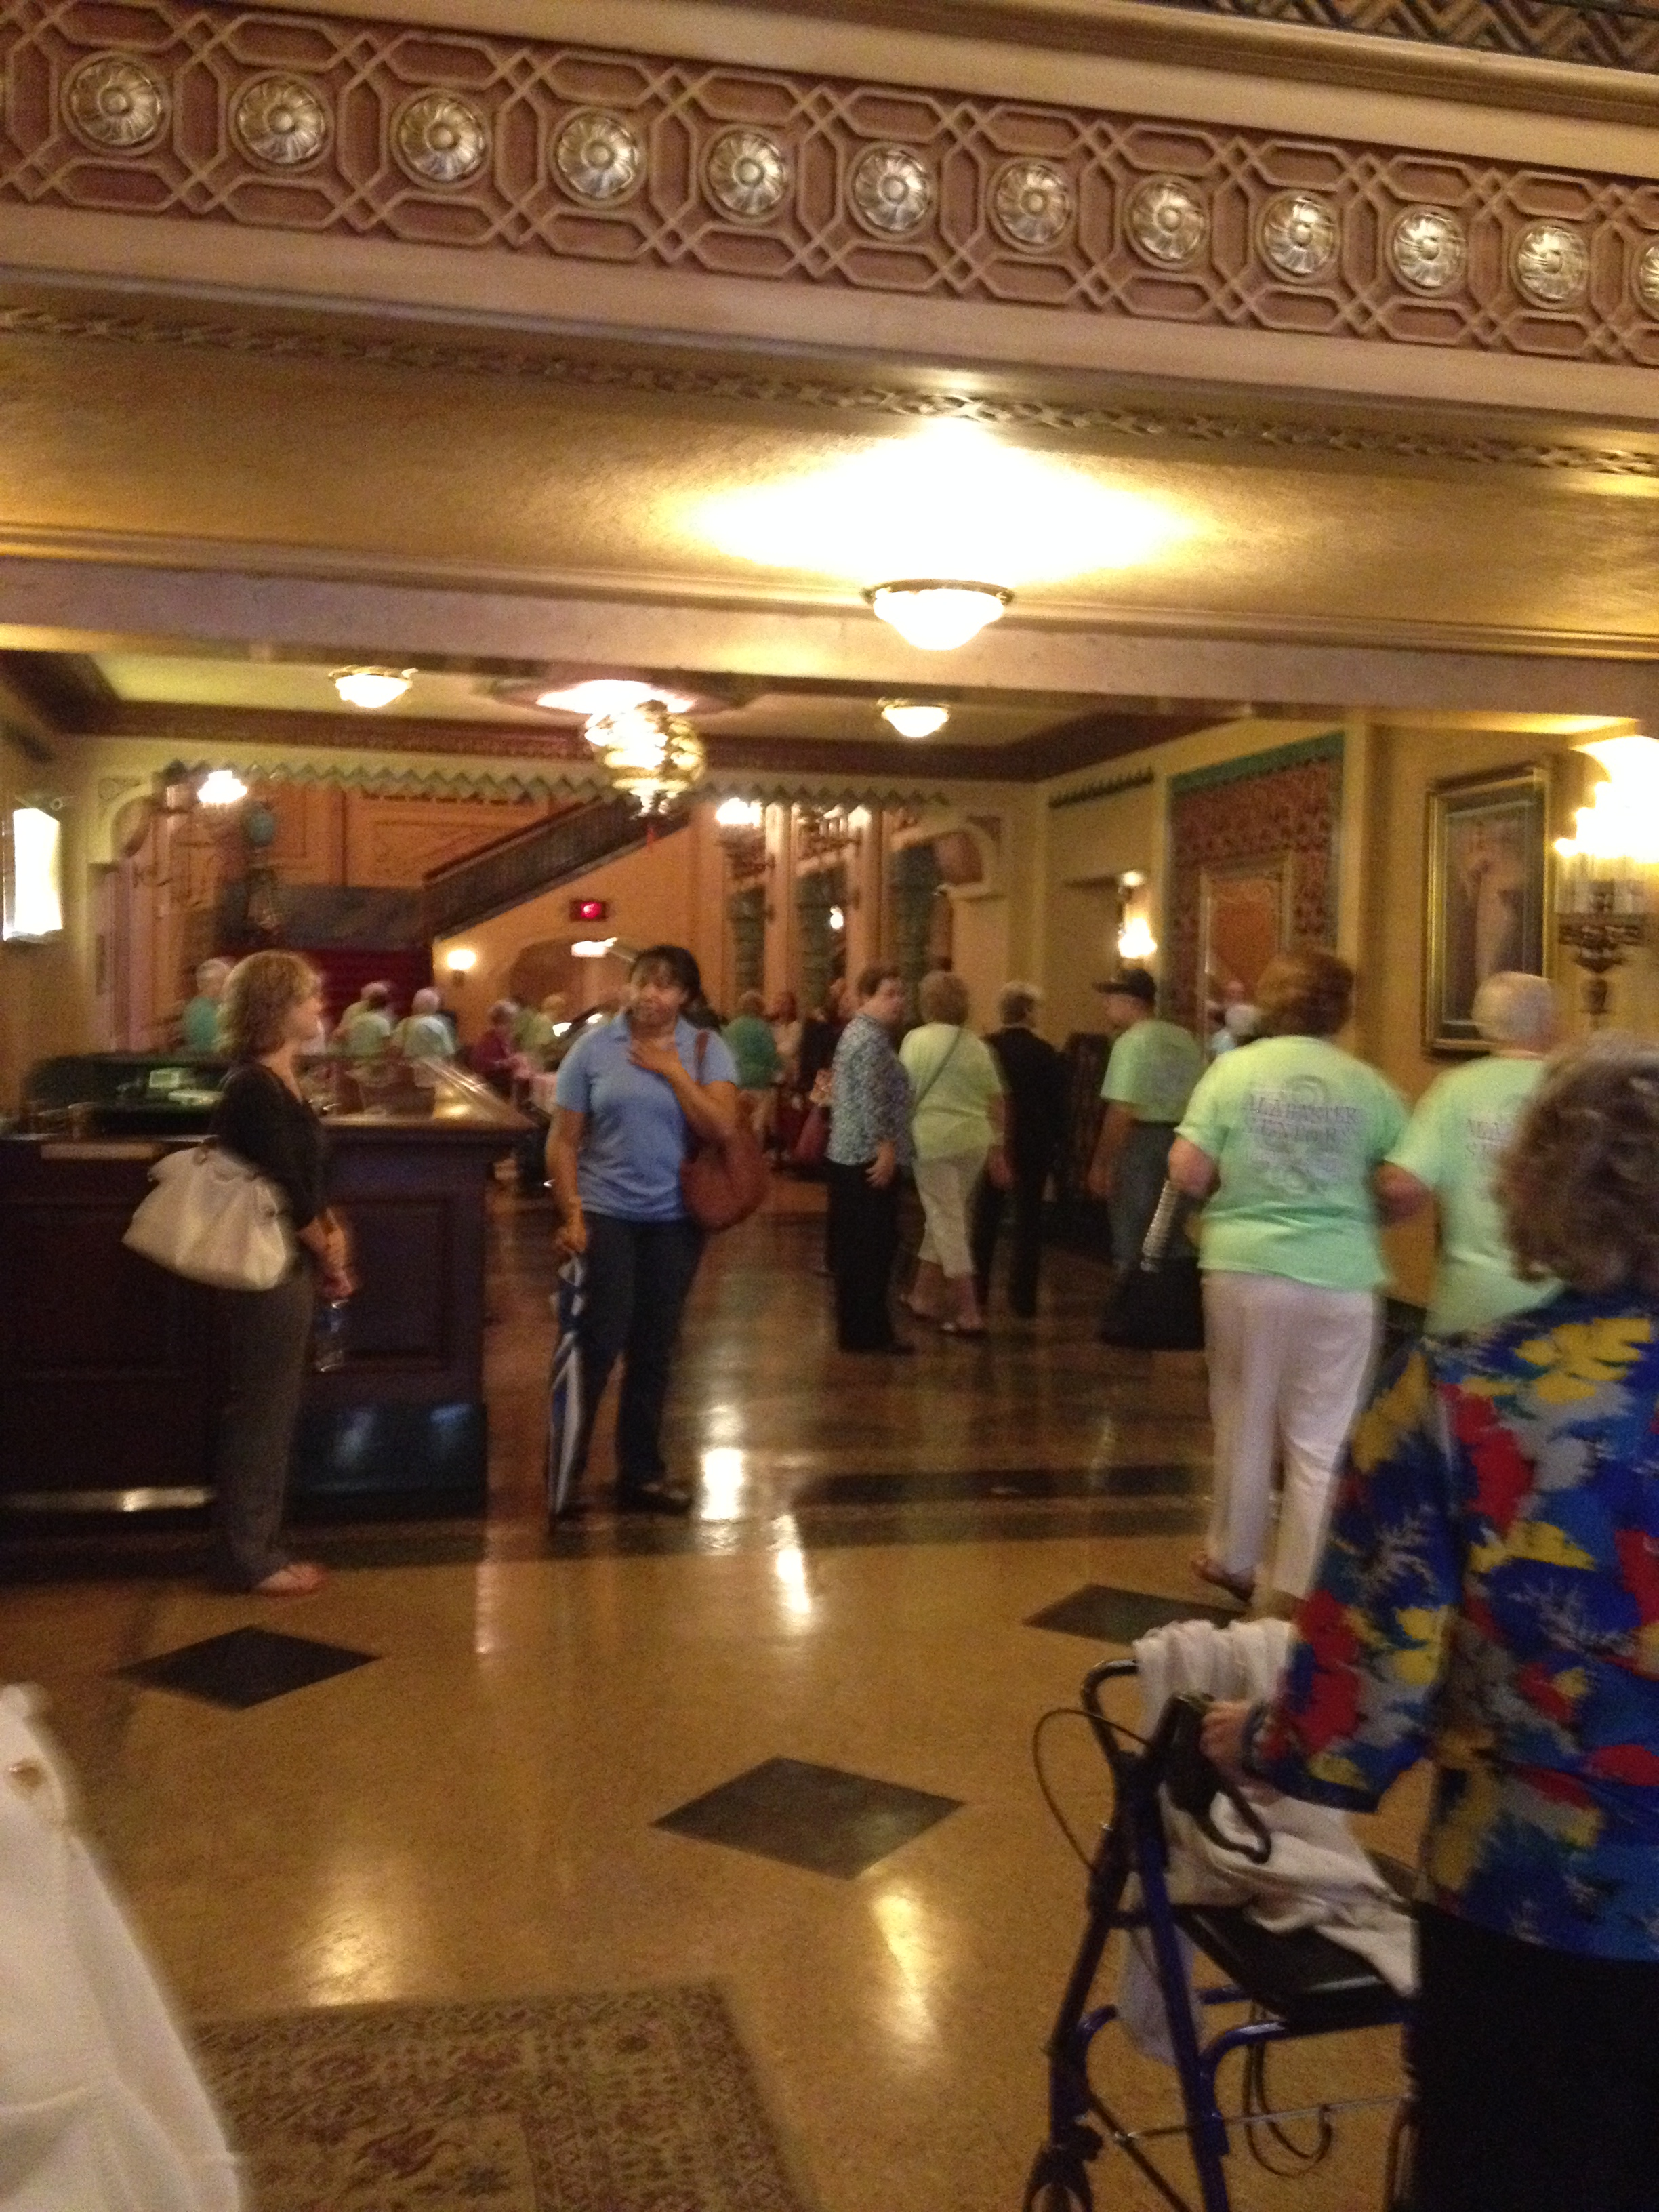 Image of the Alabama Theatre lobby